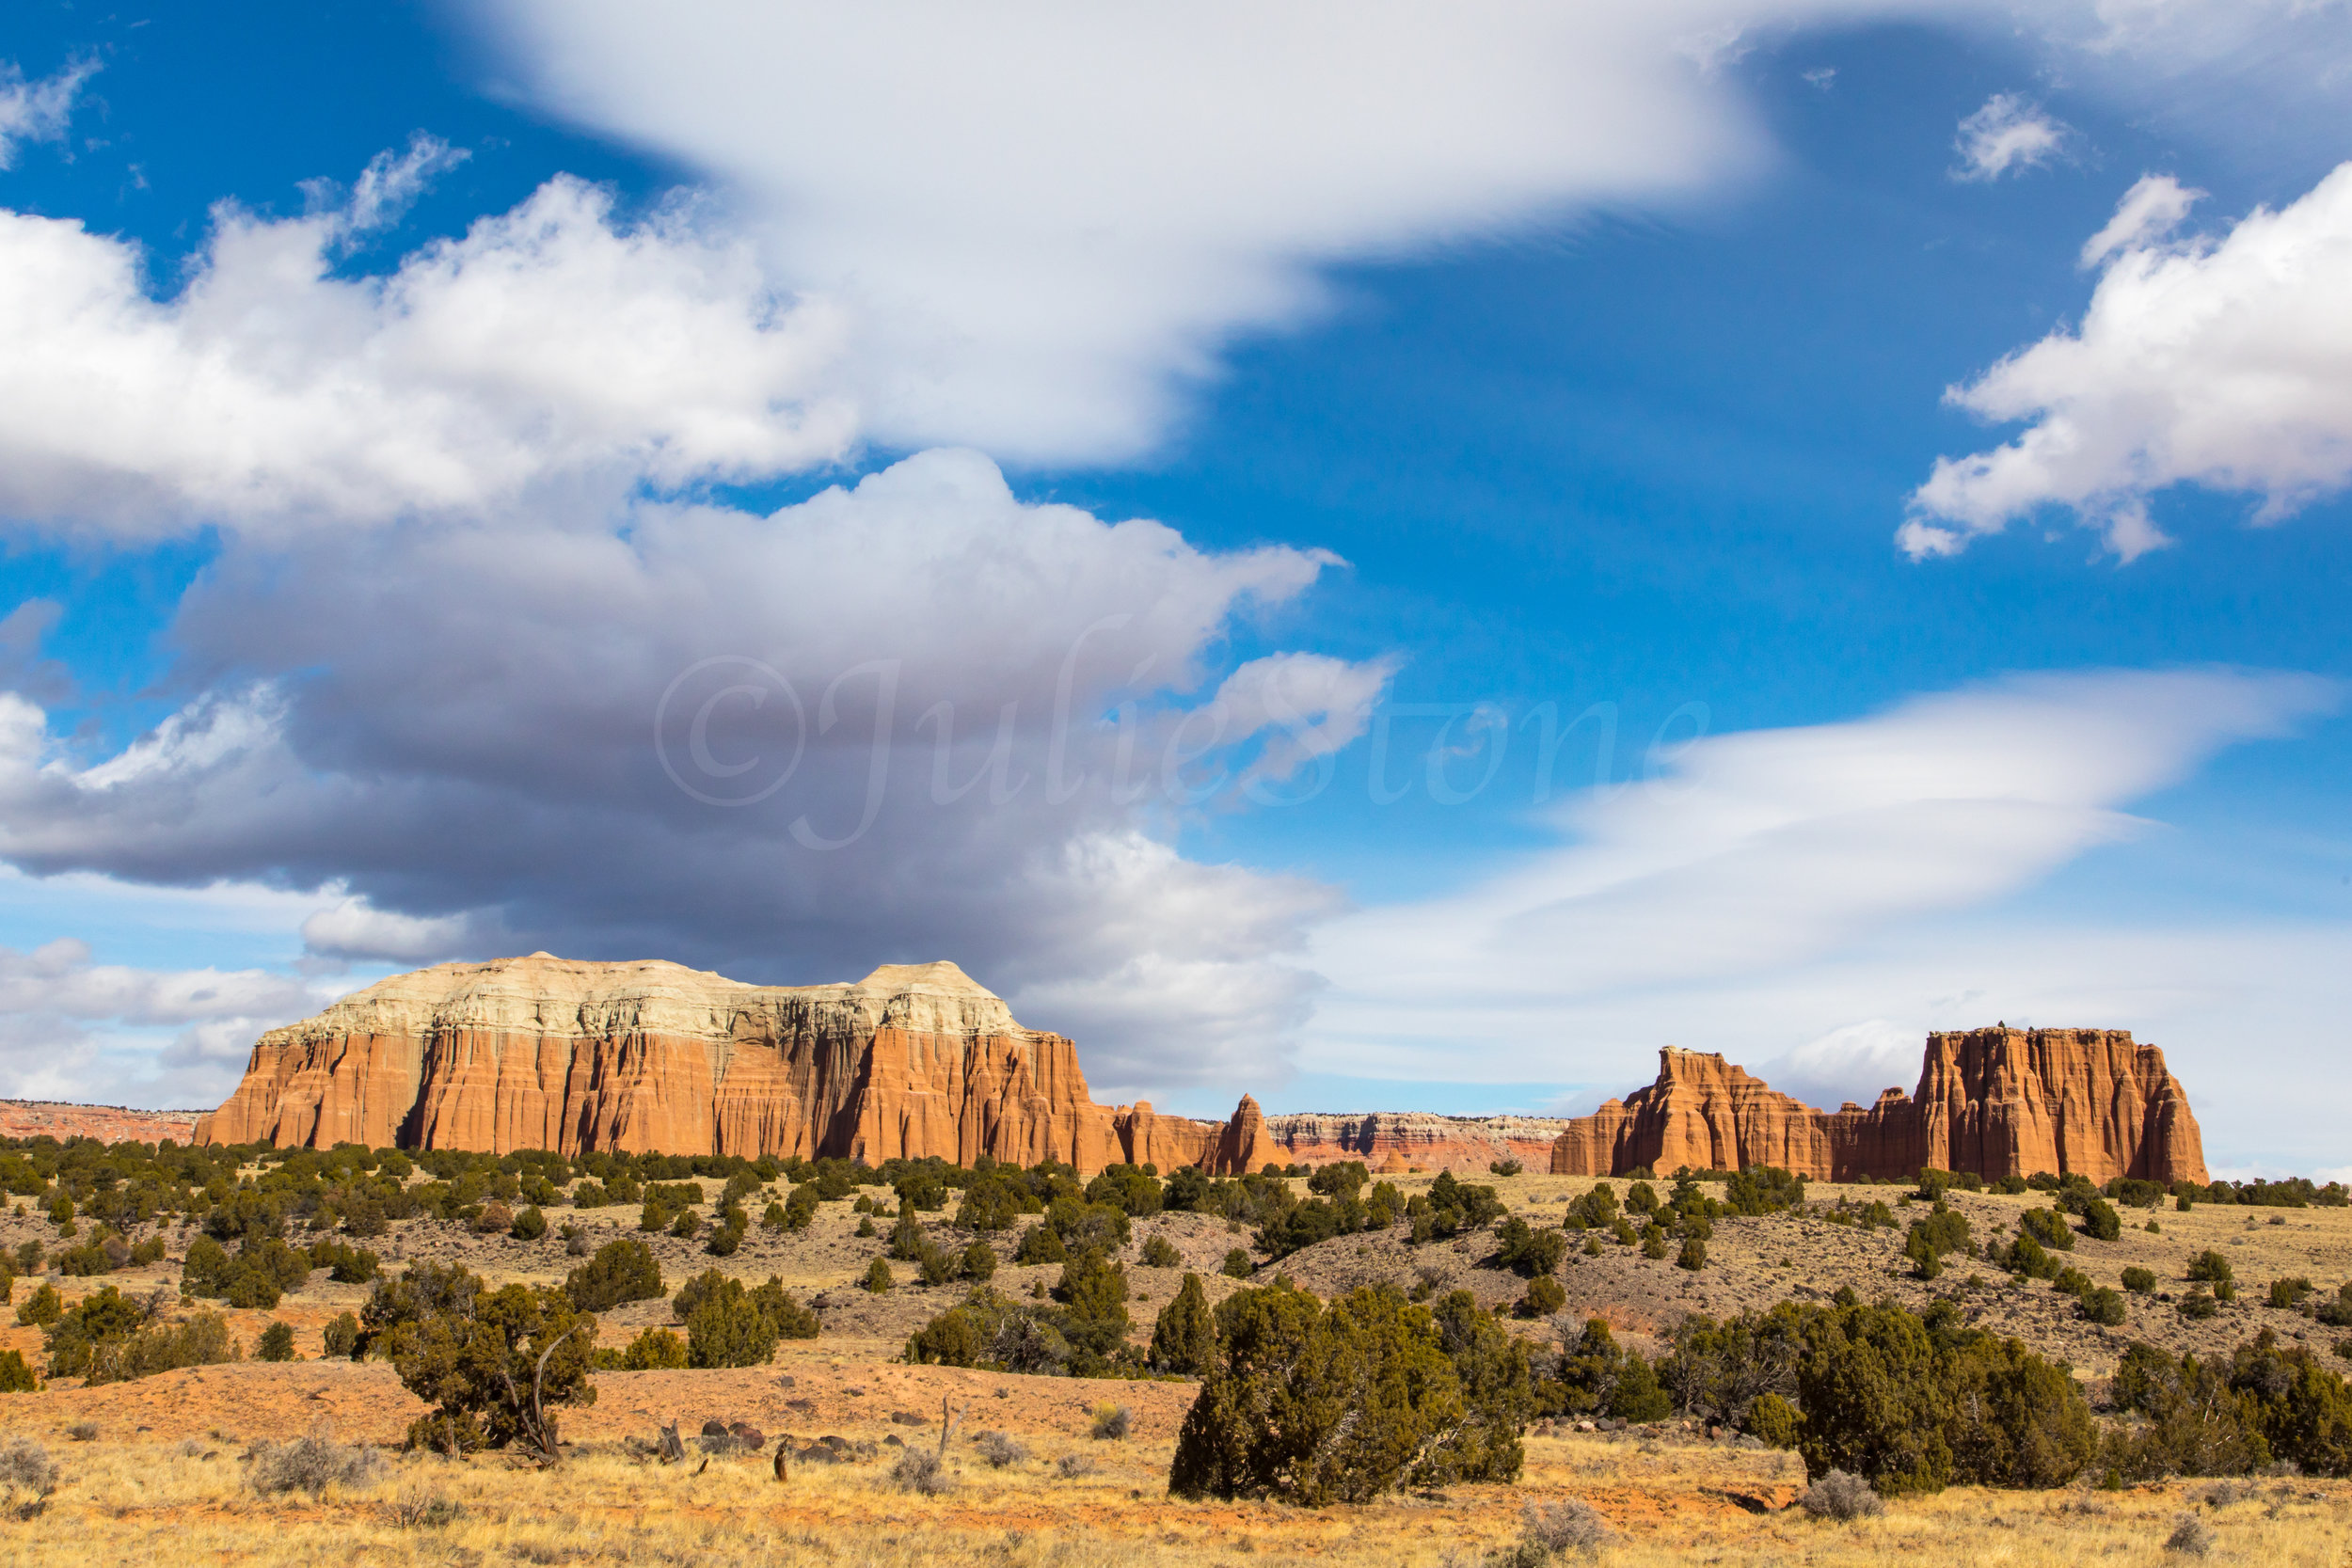 Capitol Reef National Park, Image # 1653